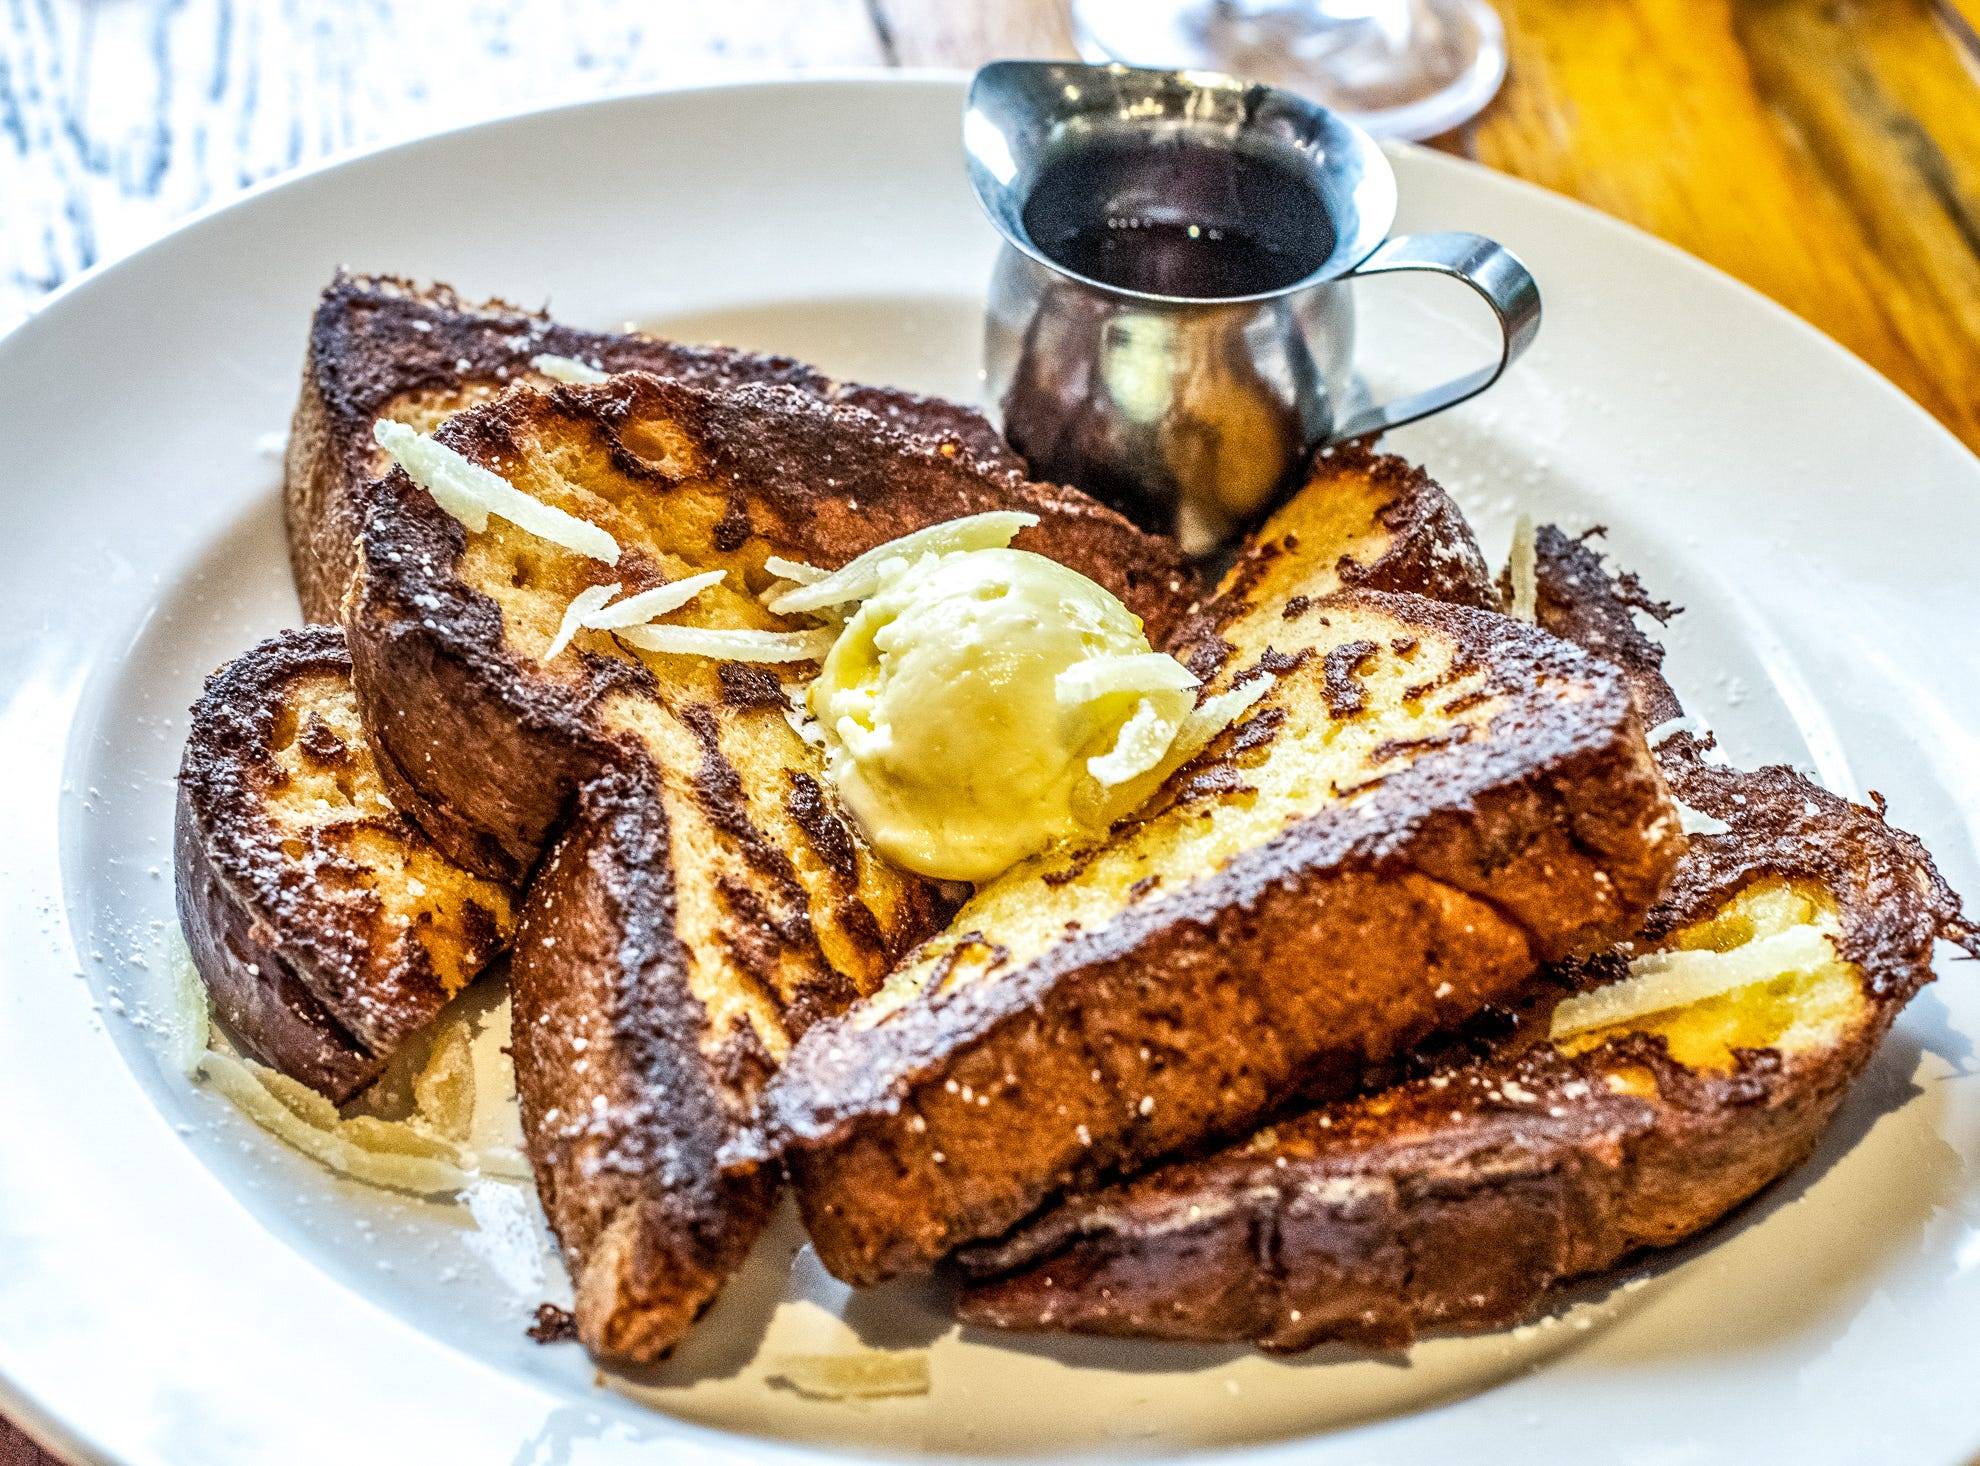 Hollander's Toast of France is Challah with orange ginger honey butter and candied ginger.